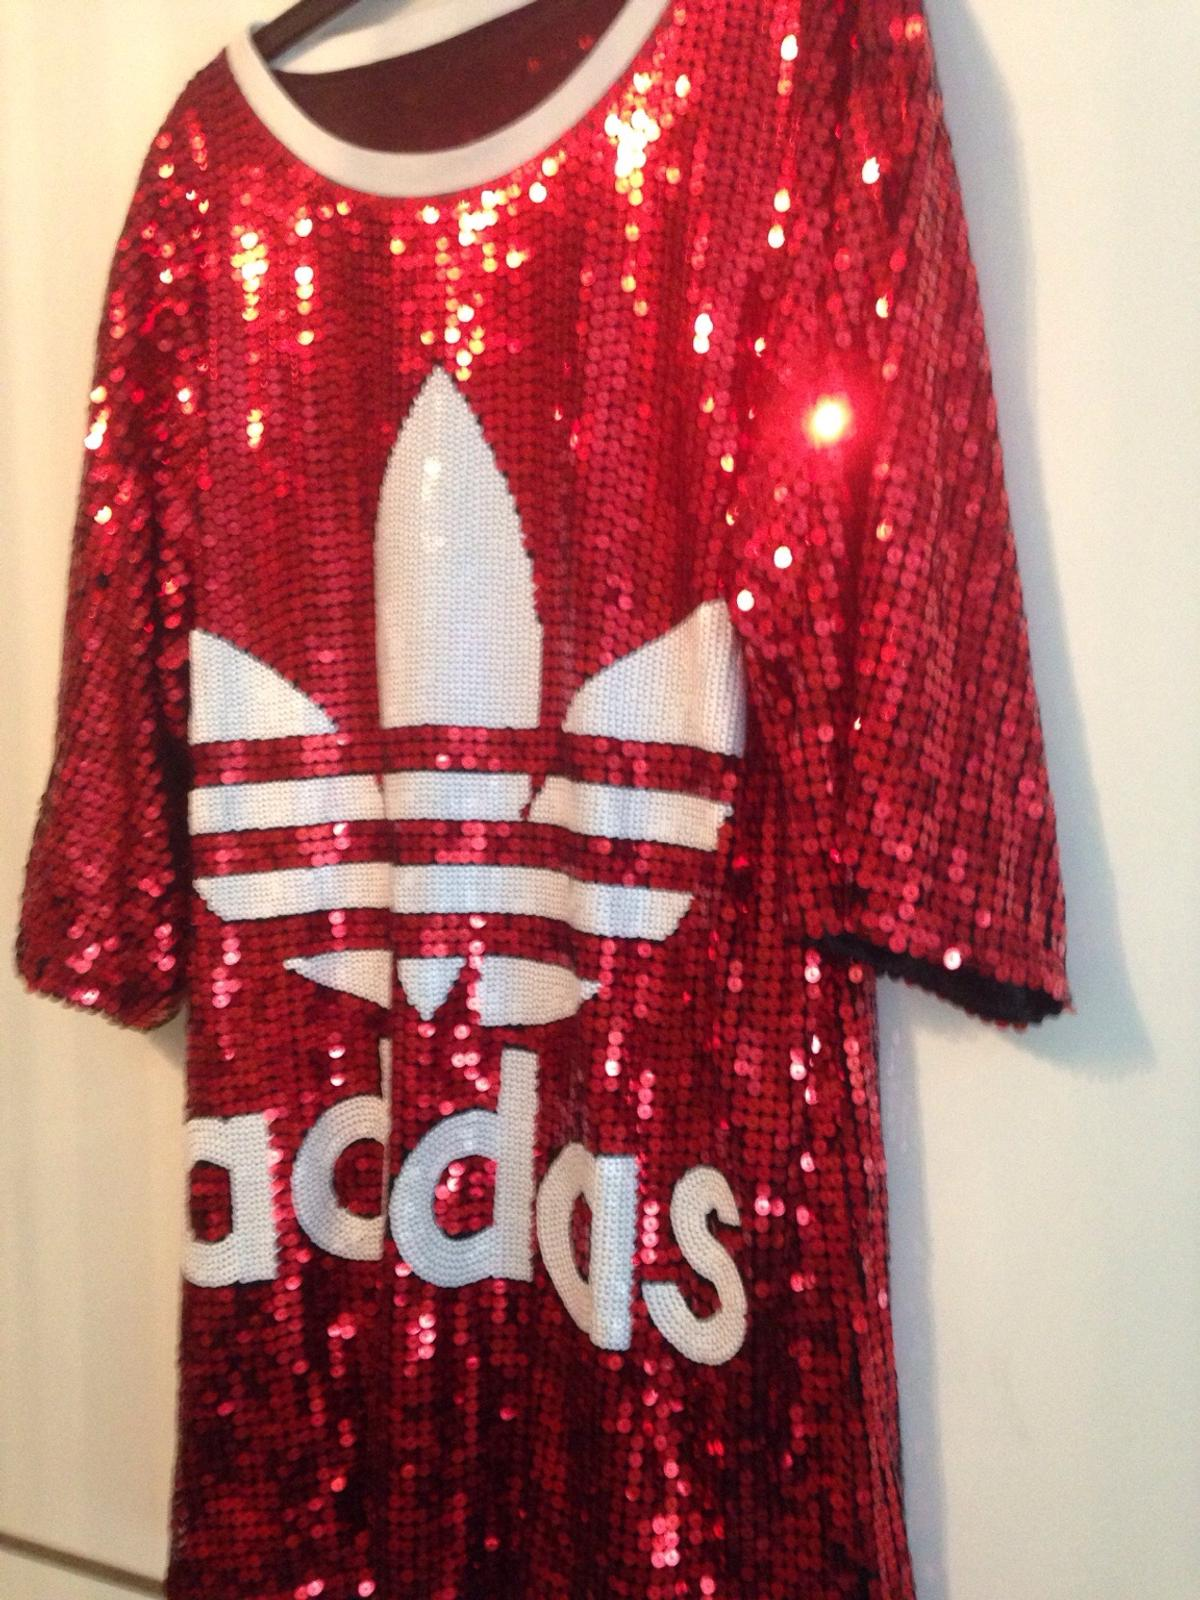 authentic great fit competitive price Pailletten Oversize Tshirt /Kleid Adidas